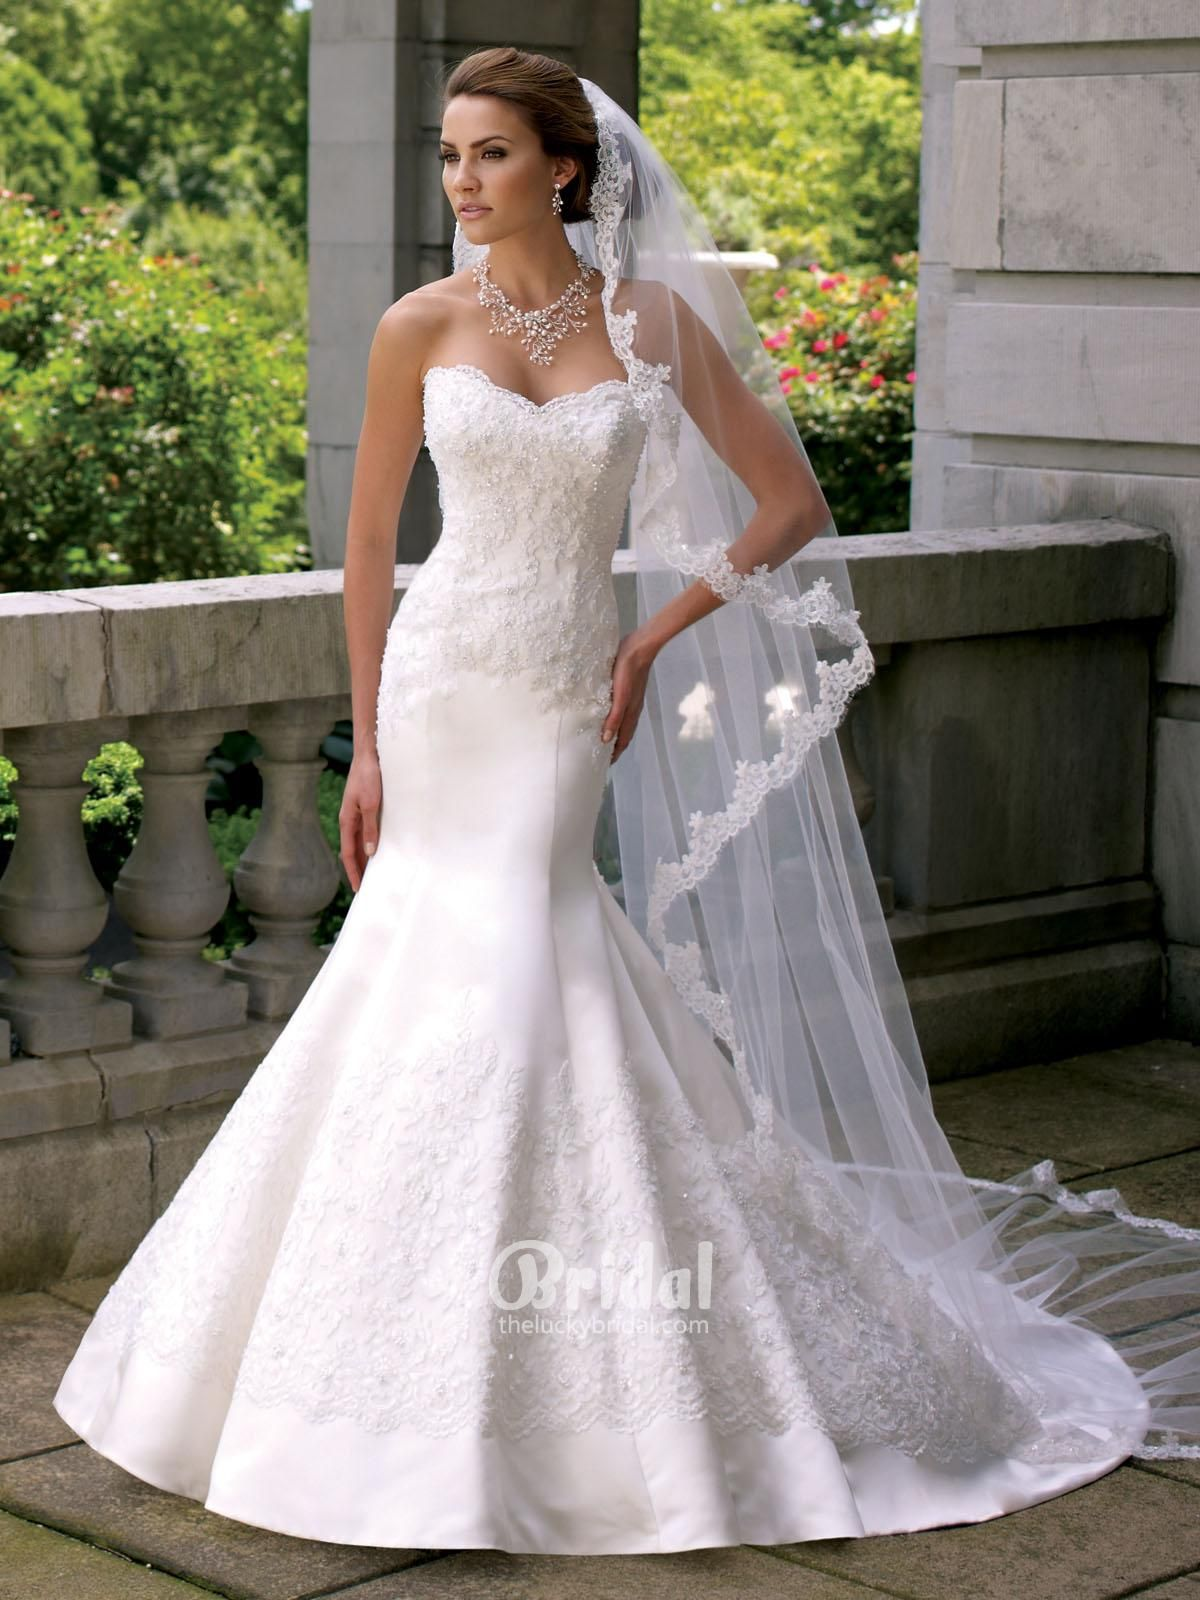 Satin Mermaid Bridal Gown with Strapless Sweetheart Beaded ...